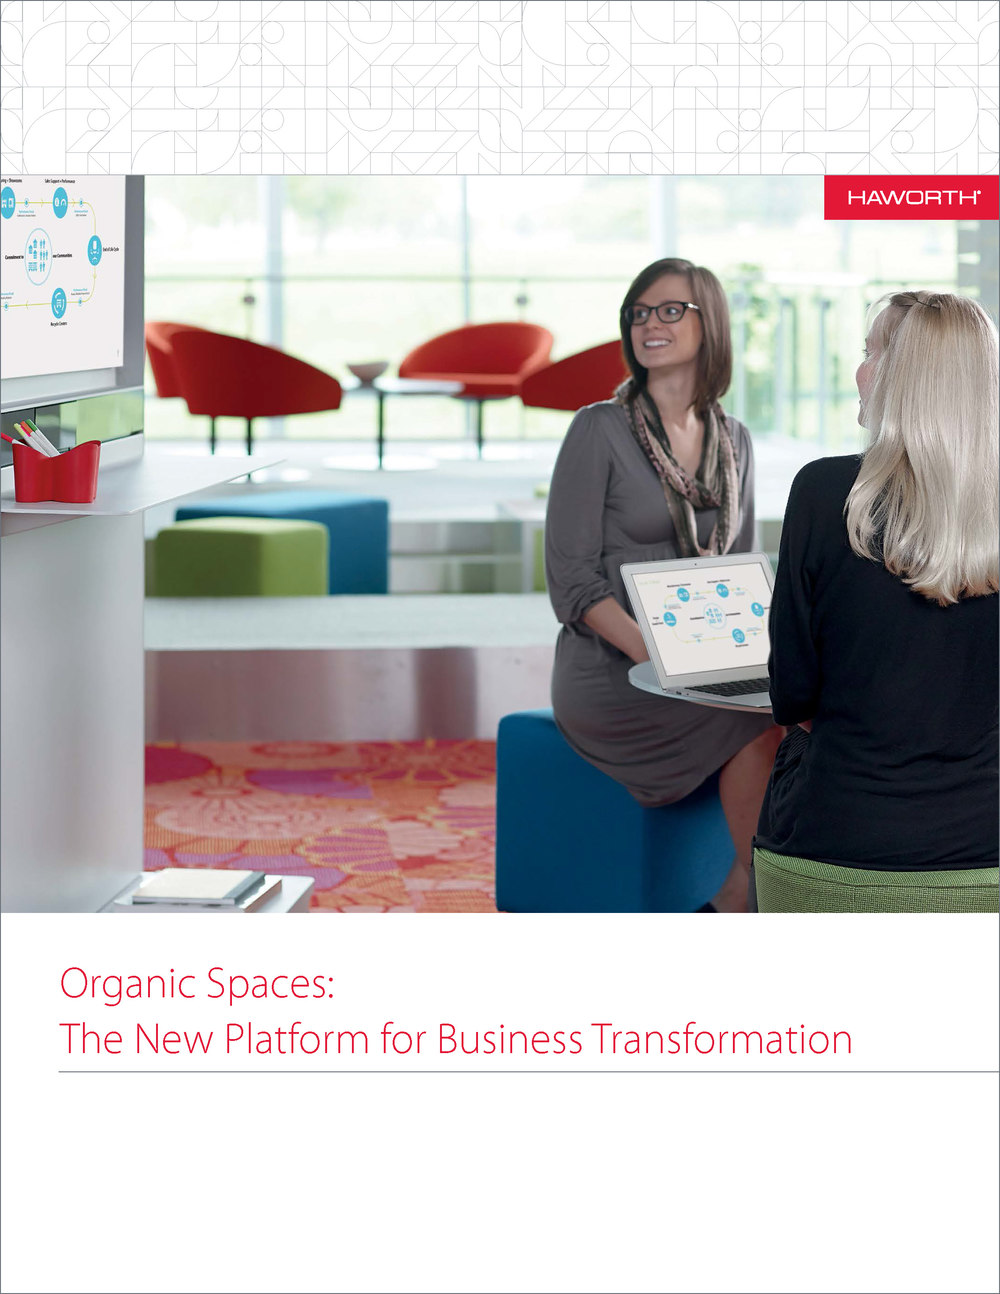 Organic Spaces: The New Platform for Business Transformation:  courtesy of Haworth